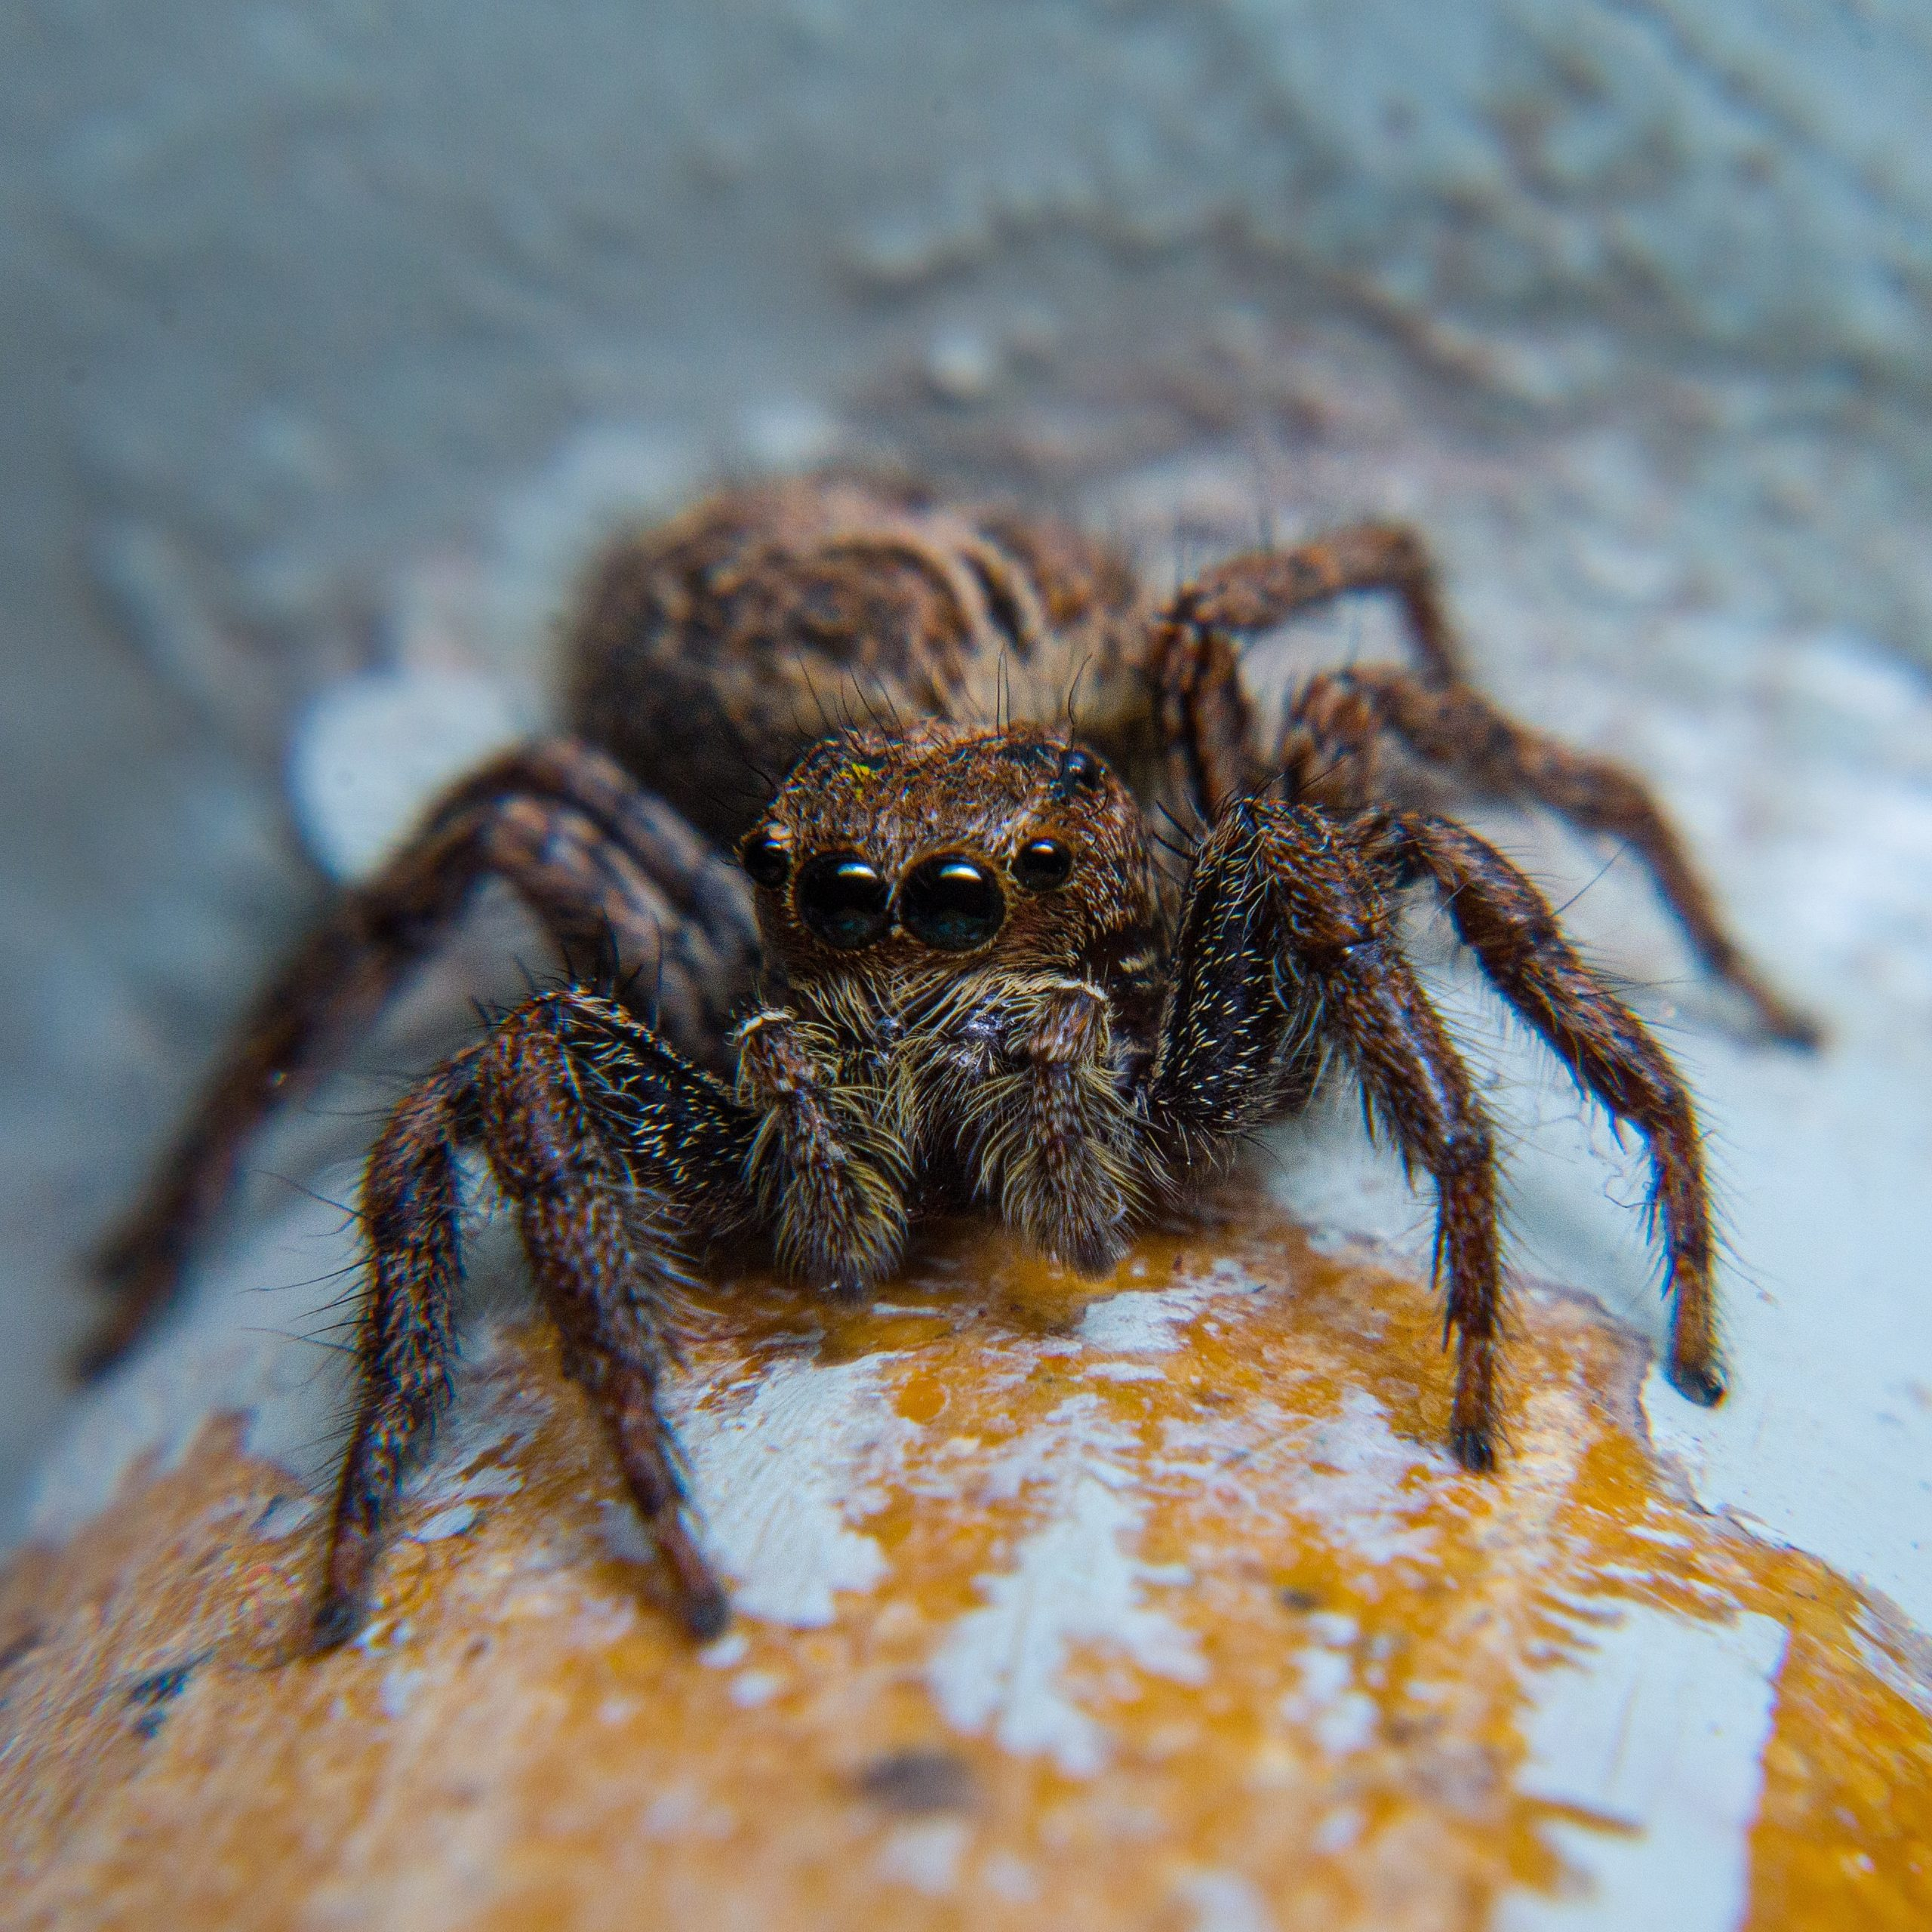 close-up of a spider